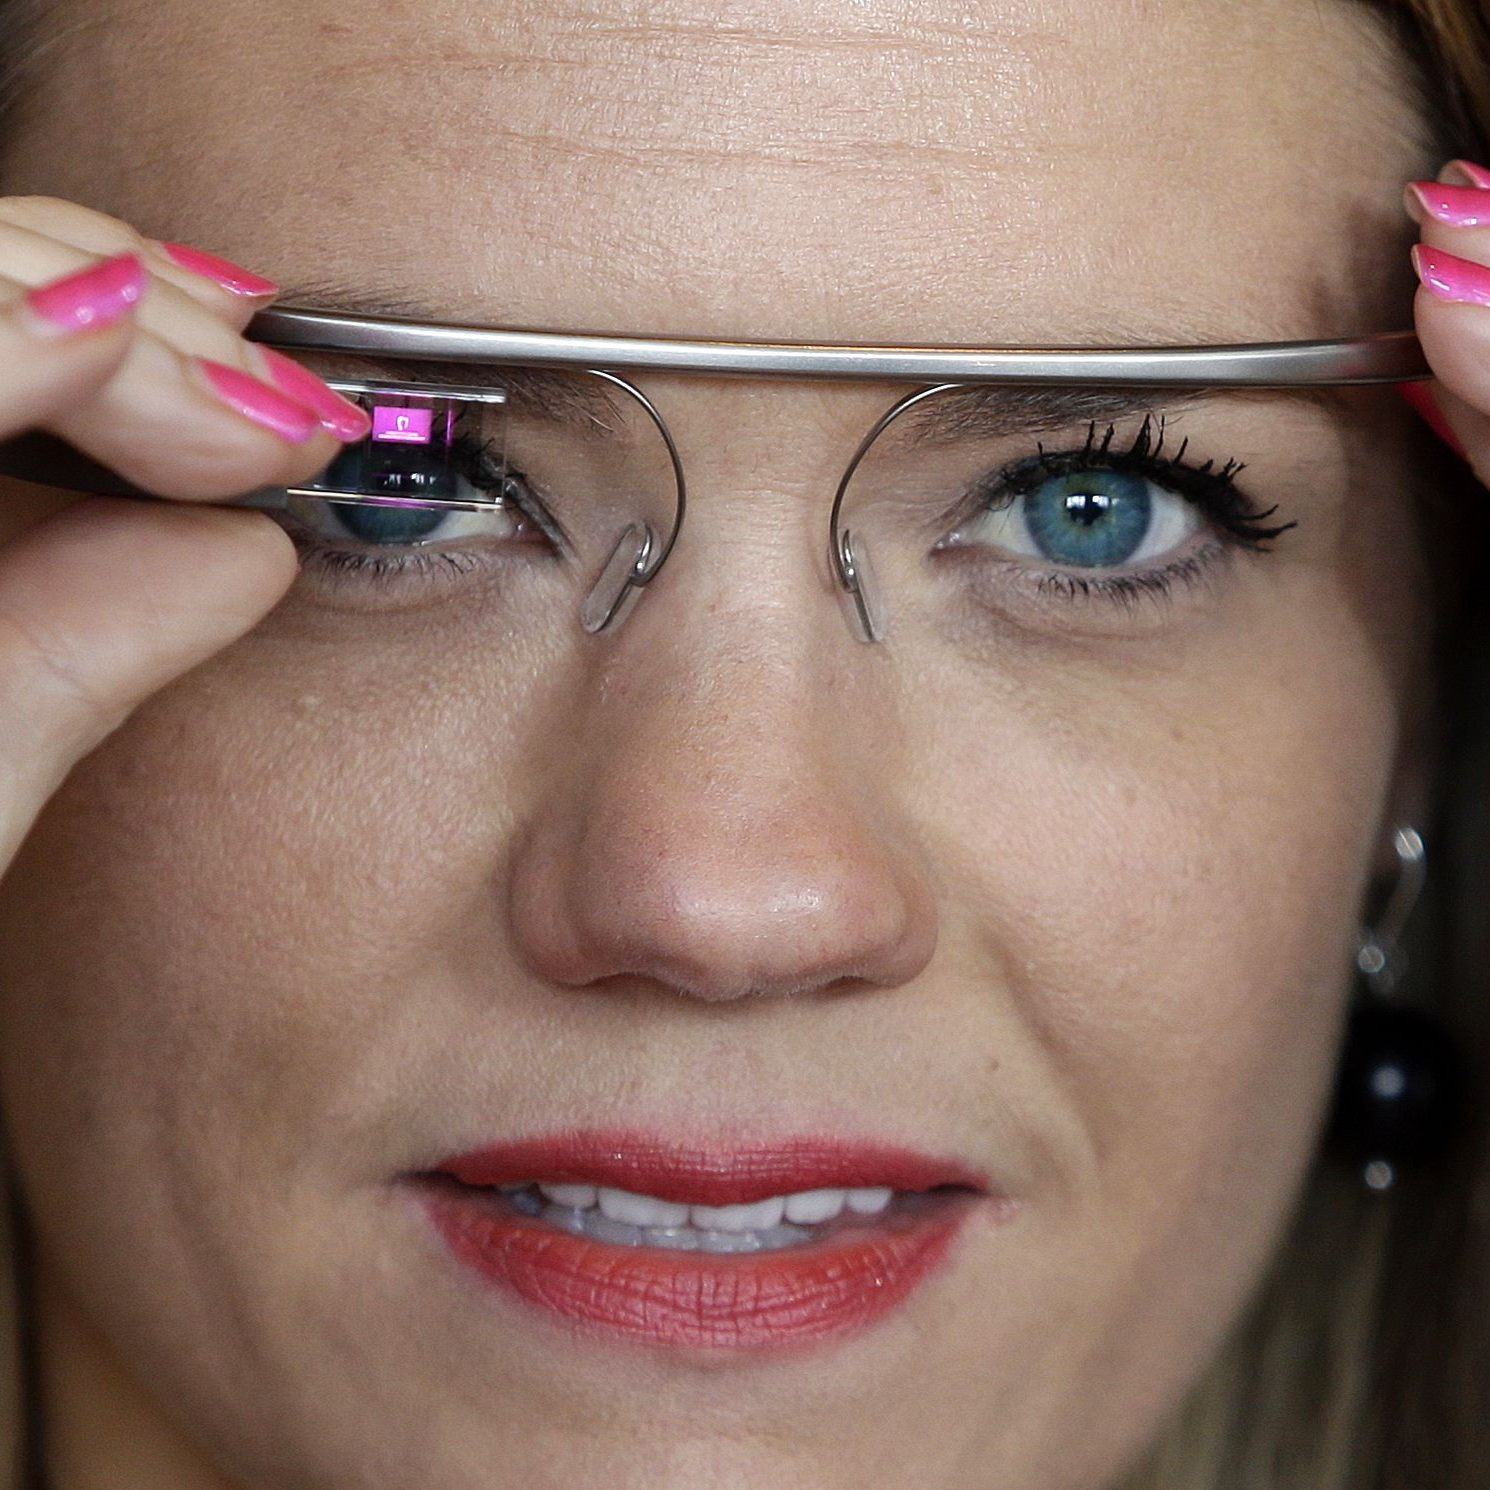 Sarah Hill, a Google Glass explorer, tries out her device in May.